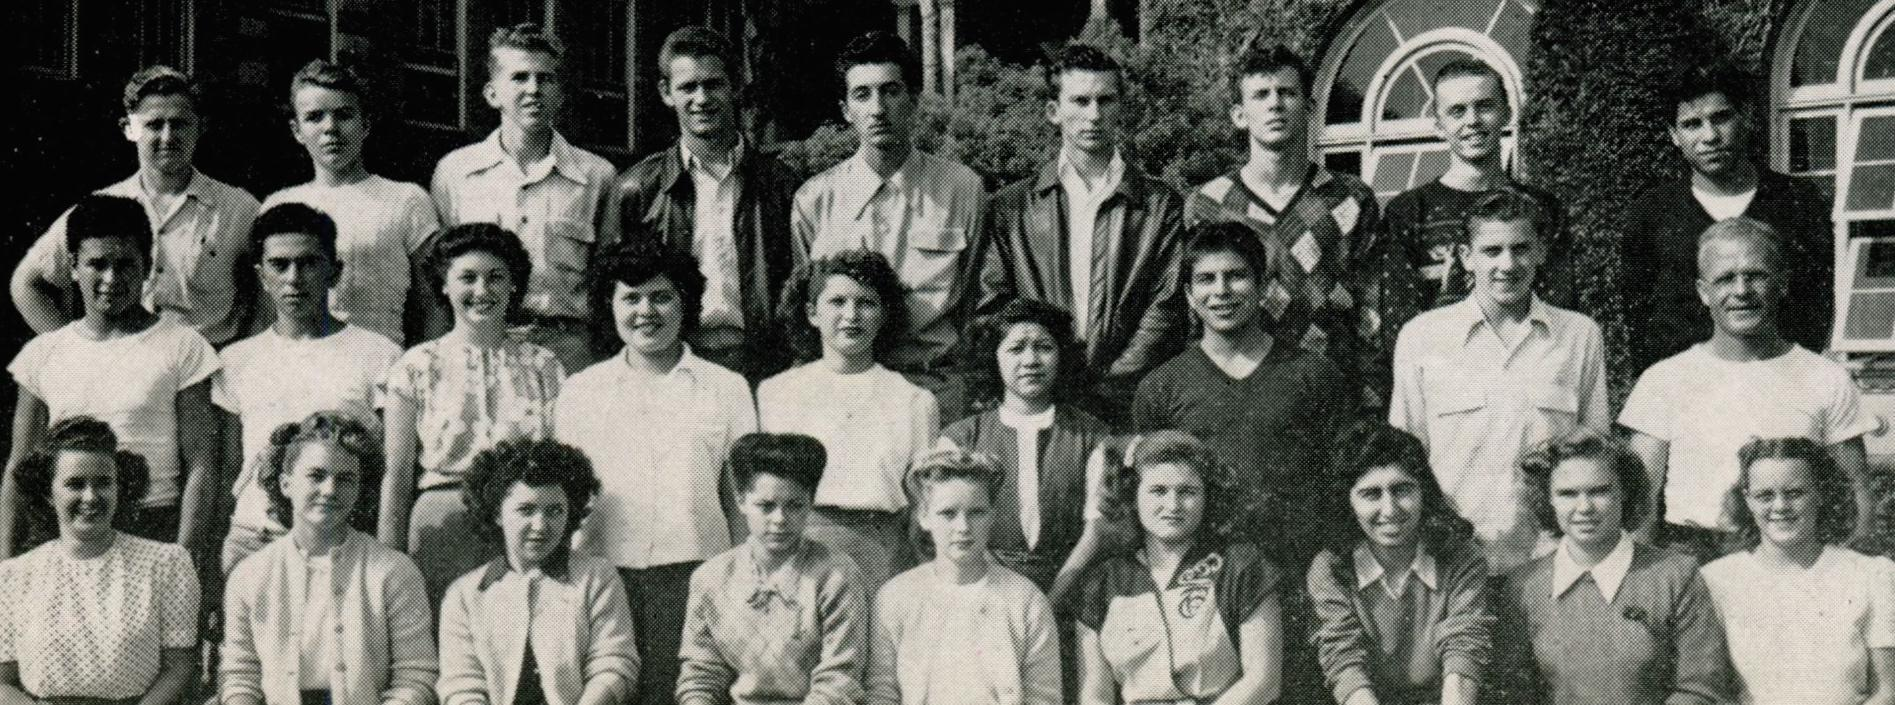 Margarita is in the 2nd row, 4th from the left (11th grade, 1946)